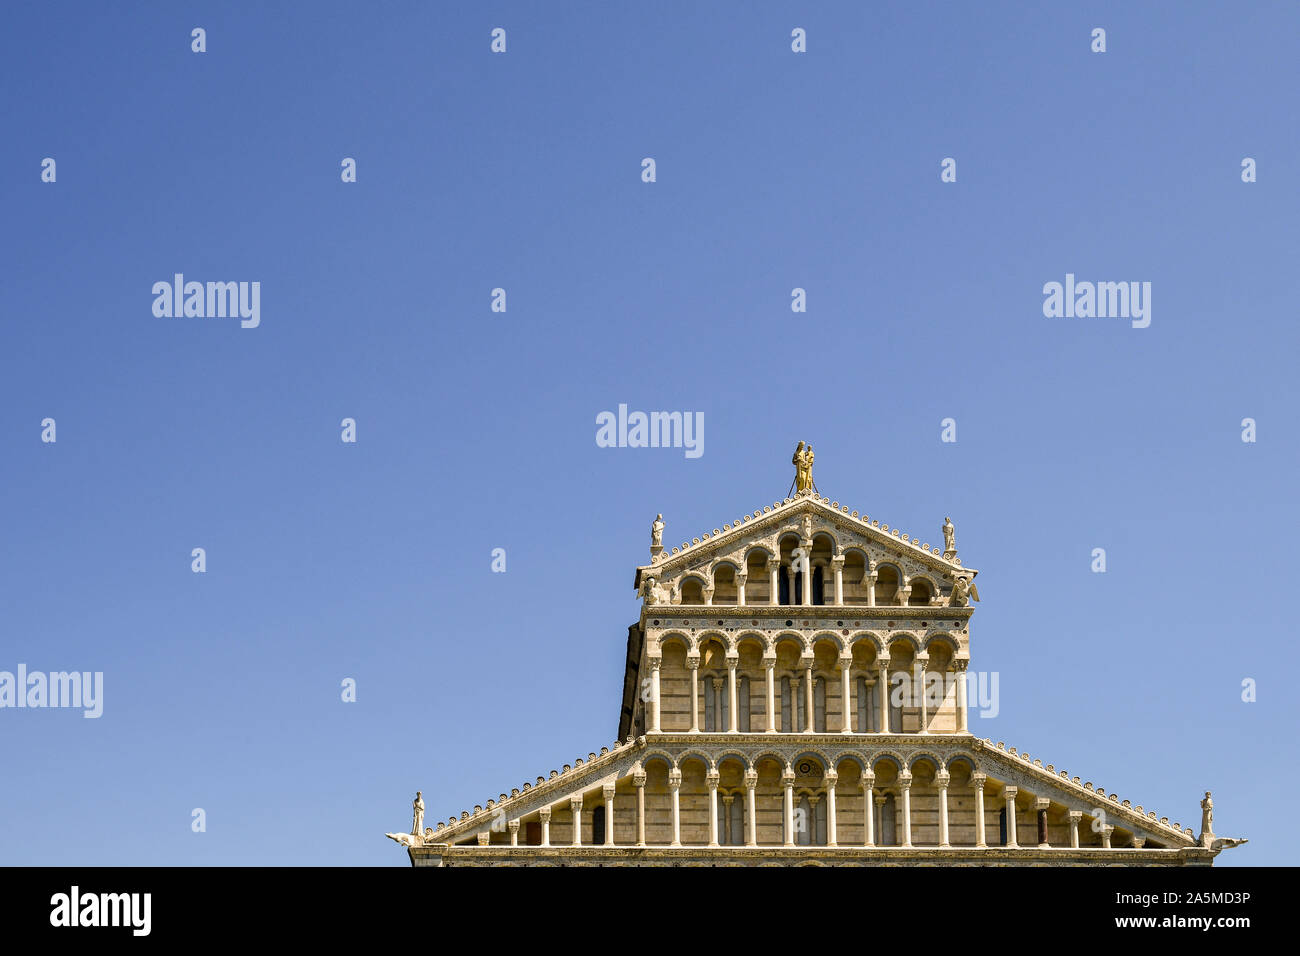 Top exterior of the façade of Pisa Cathedral (Duomo di Santa Maria Assunta) in the famous Piazza dei Miracoli against clear blue sky, Tuscany, Italy Stock Photo